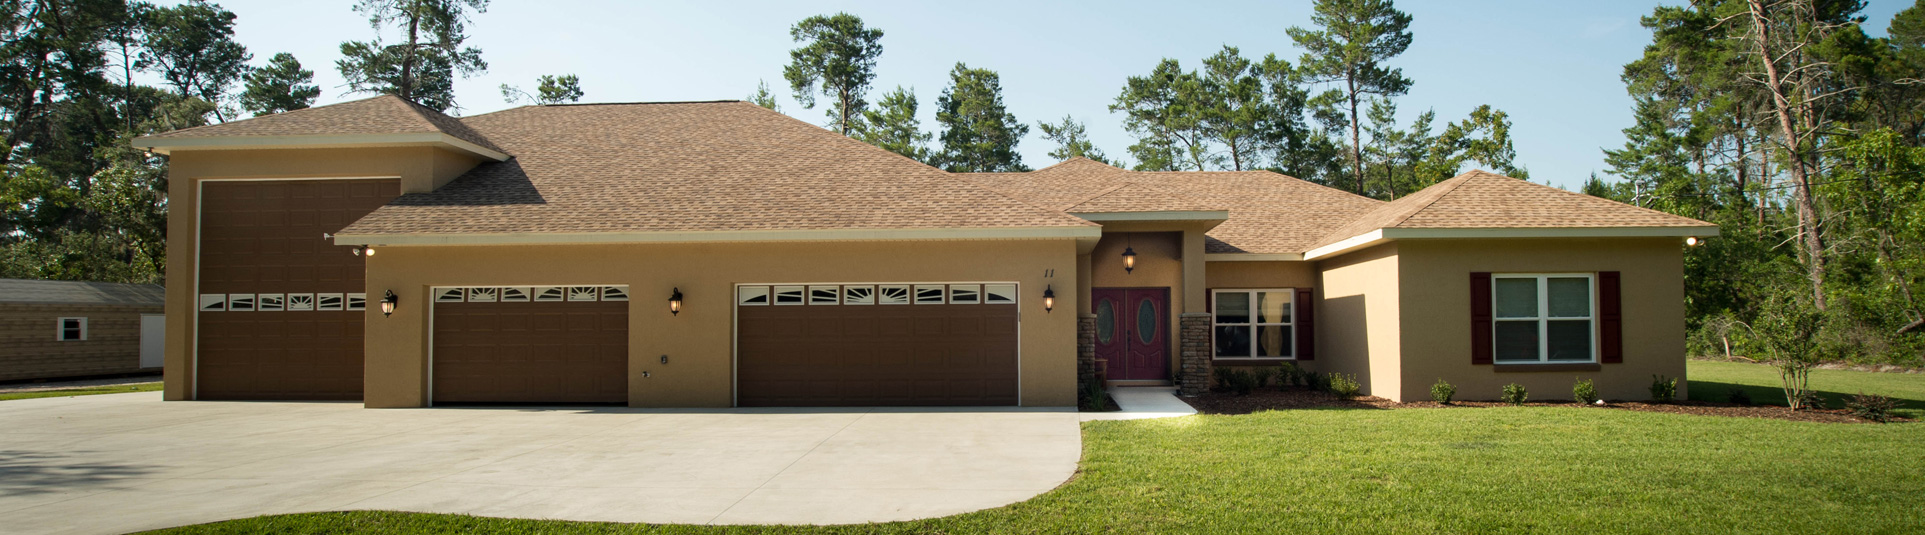 Rv Garage Homes Florida